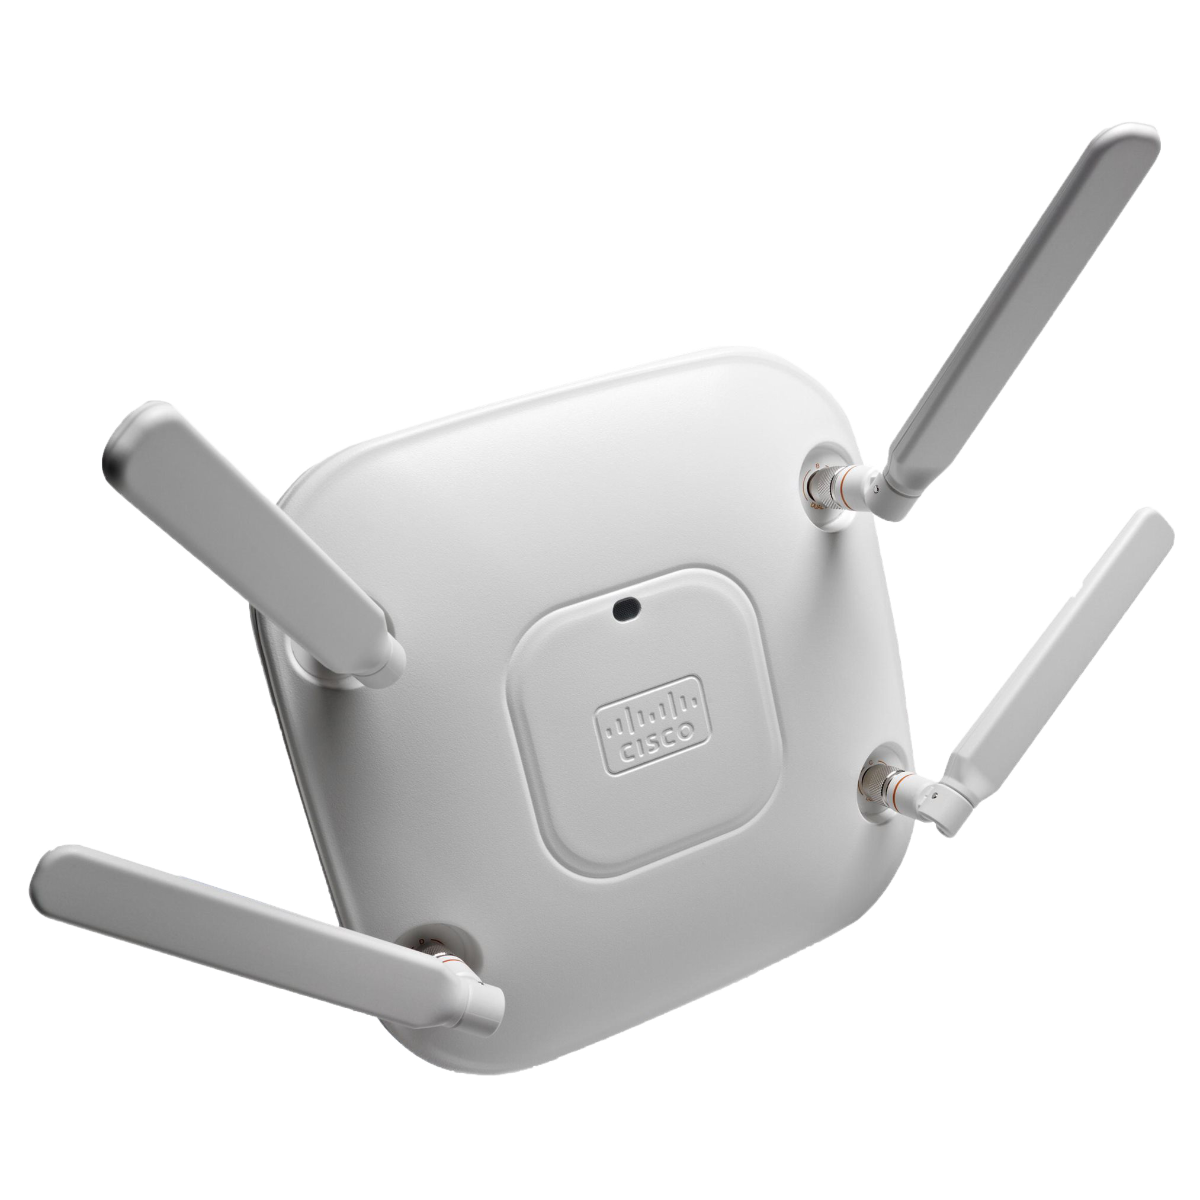 Cisco Aironet Wireless Access Points